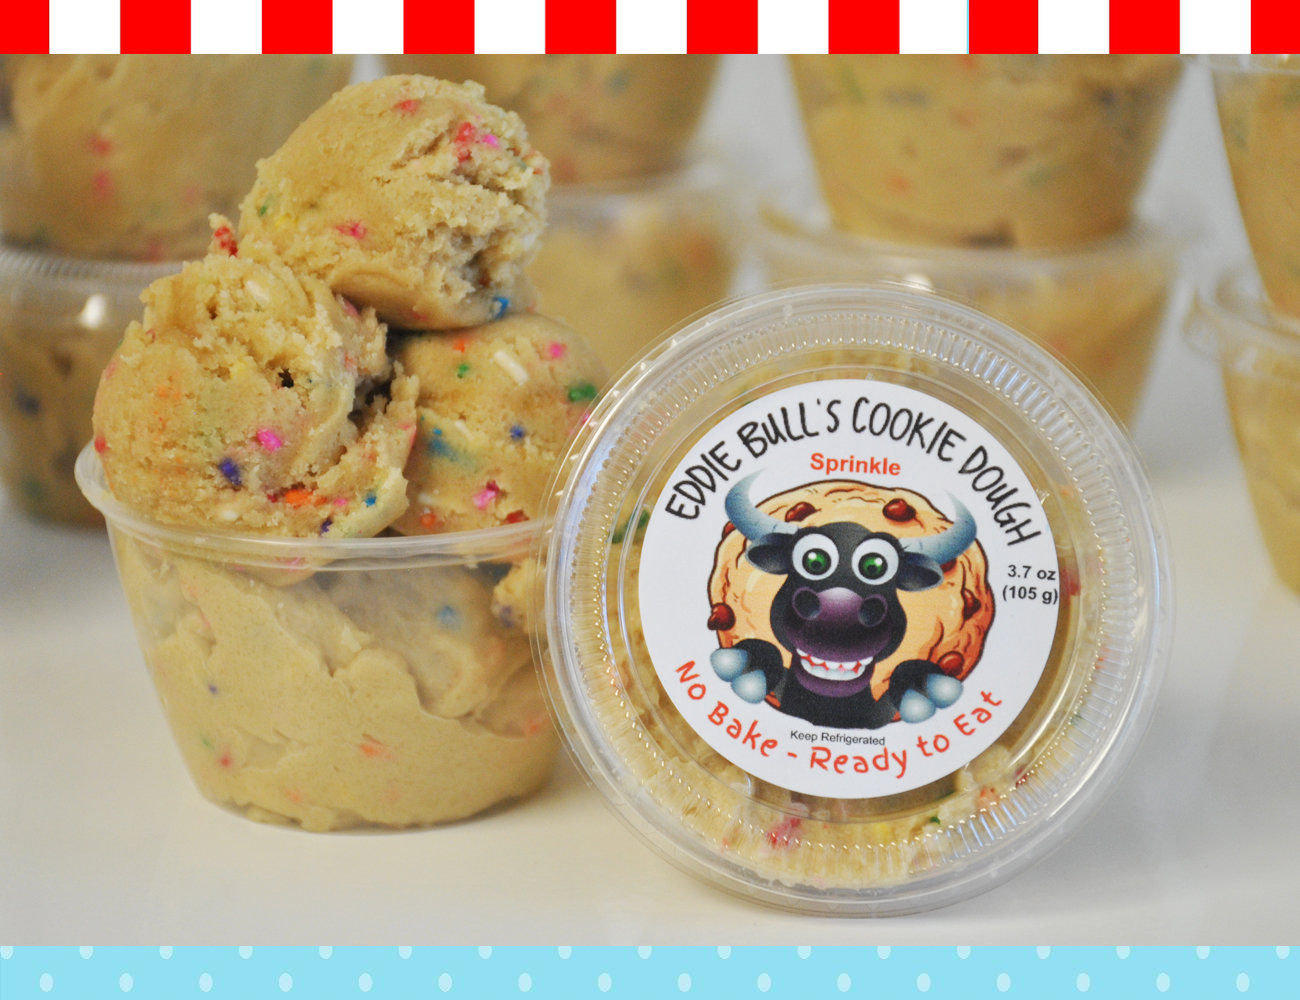 2 Pack Eddie Bulls Cookie Dough (2 - 32 ounce containers) 2pack